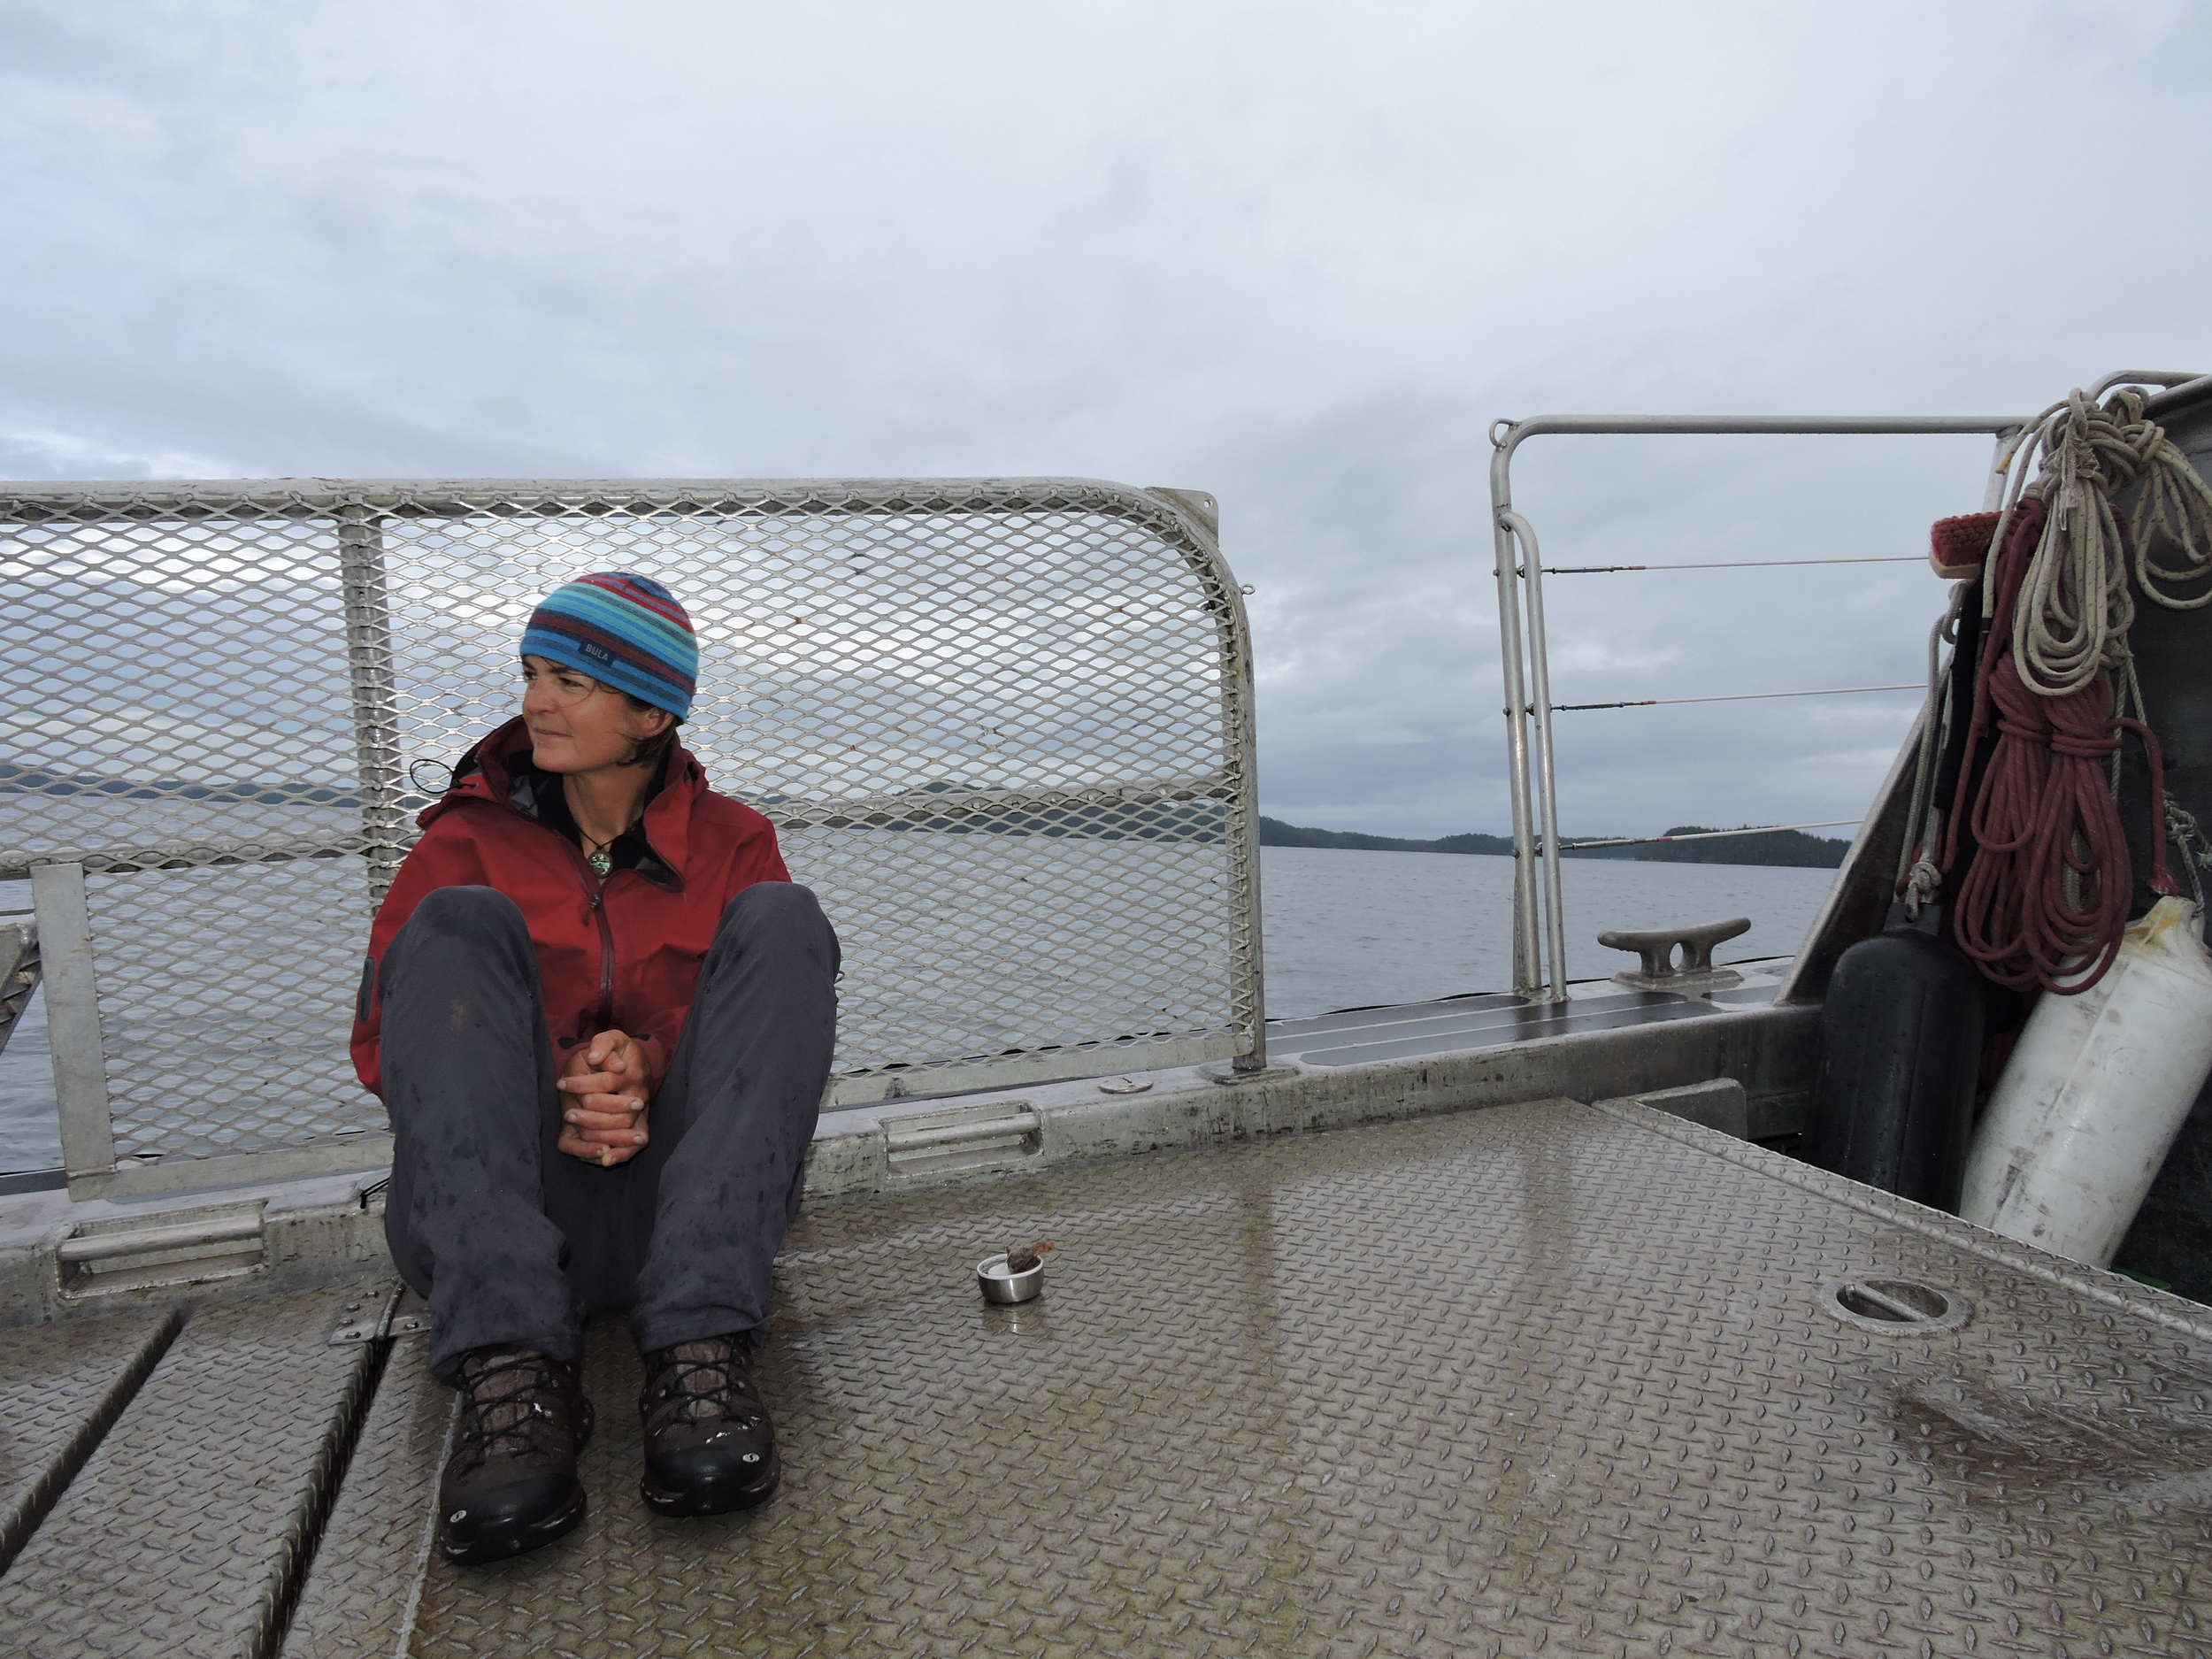 Fiona reflecting on the journey during the Water Taxi ride back.